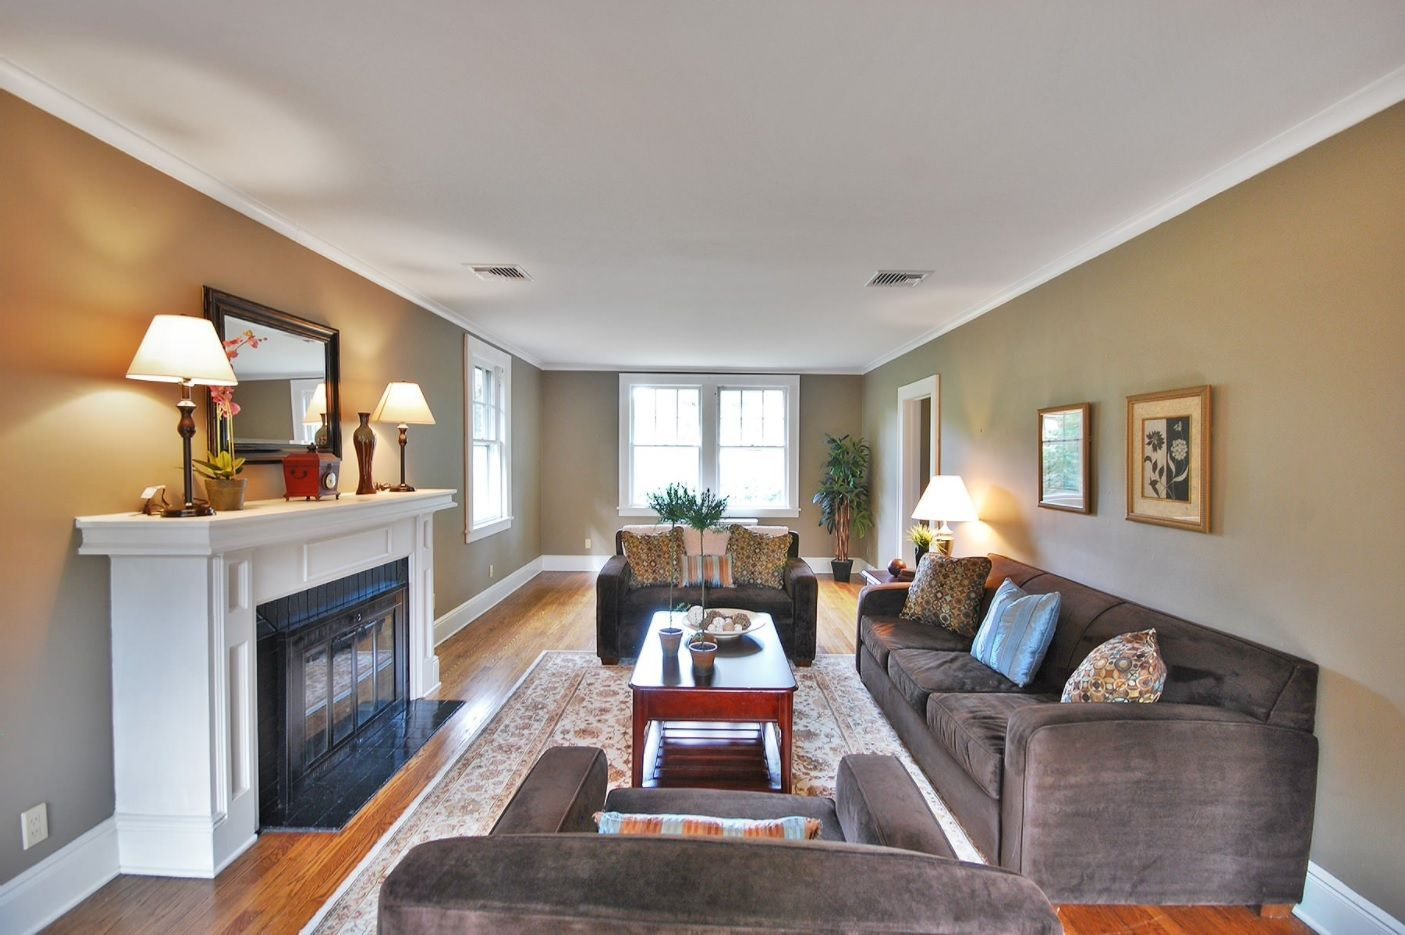 Living Room Layout Design & Decoration Ideas. Classic living with artificial fireplace and low white ceiling